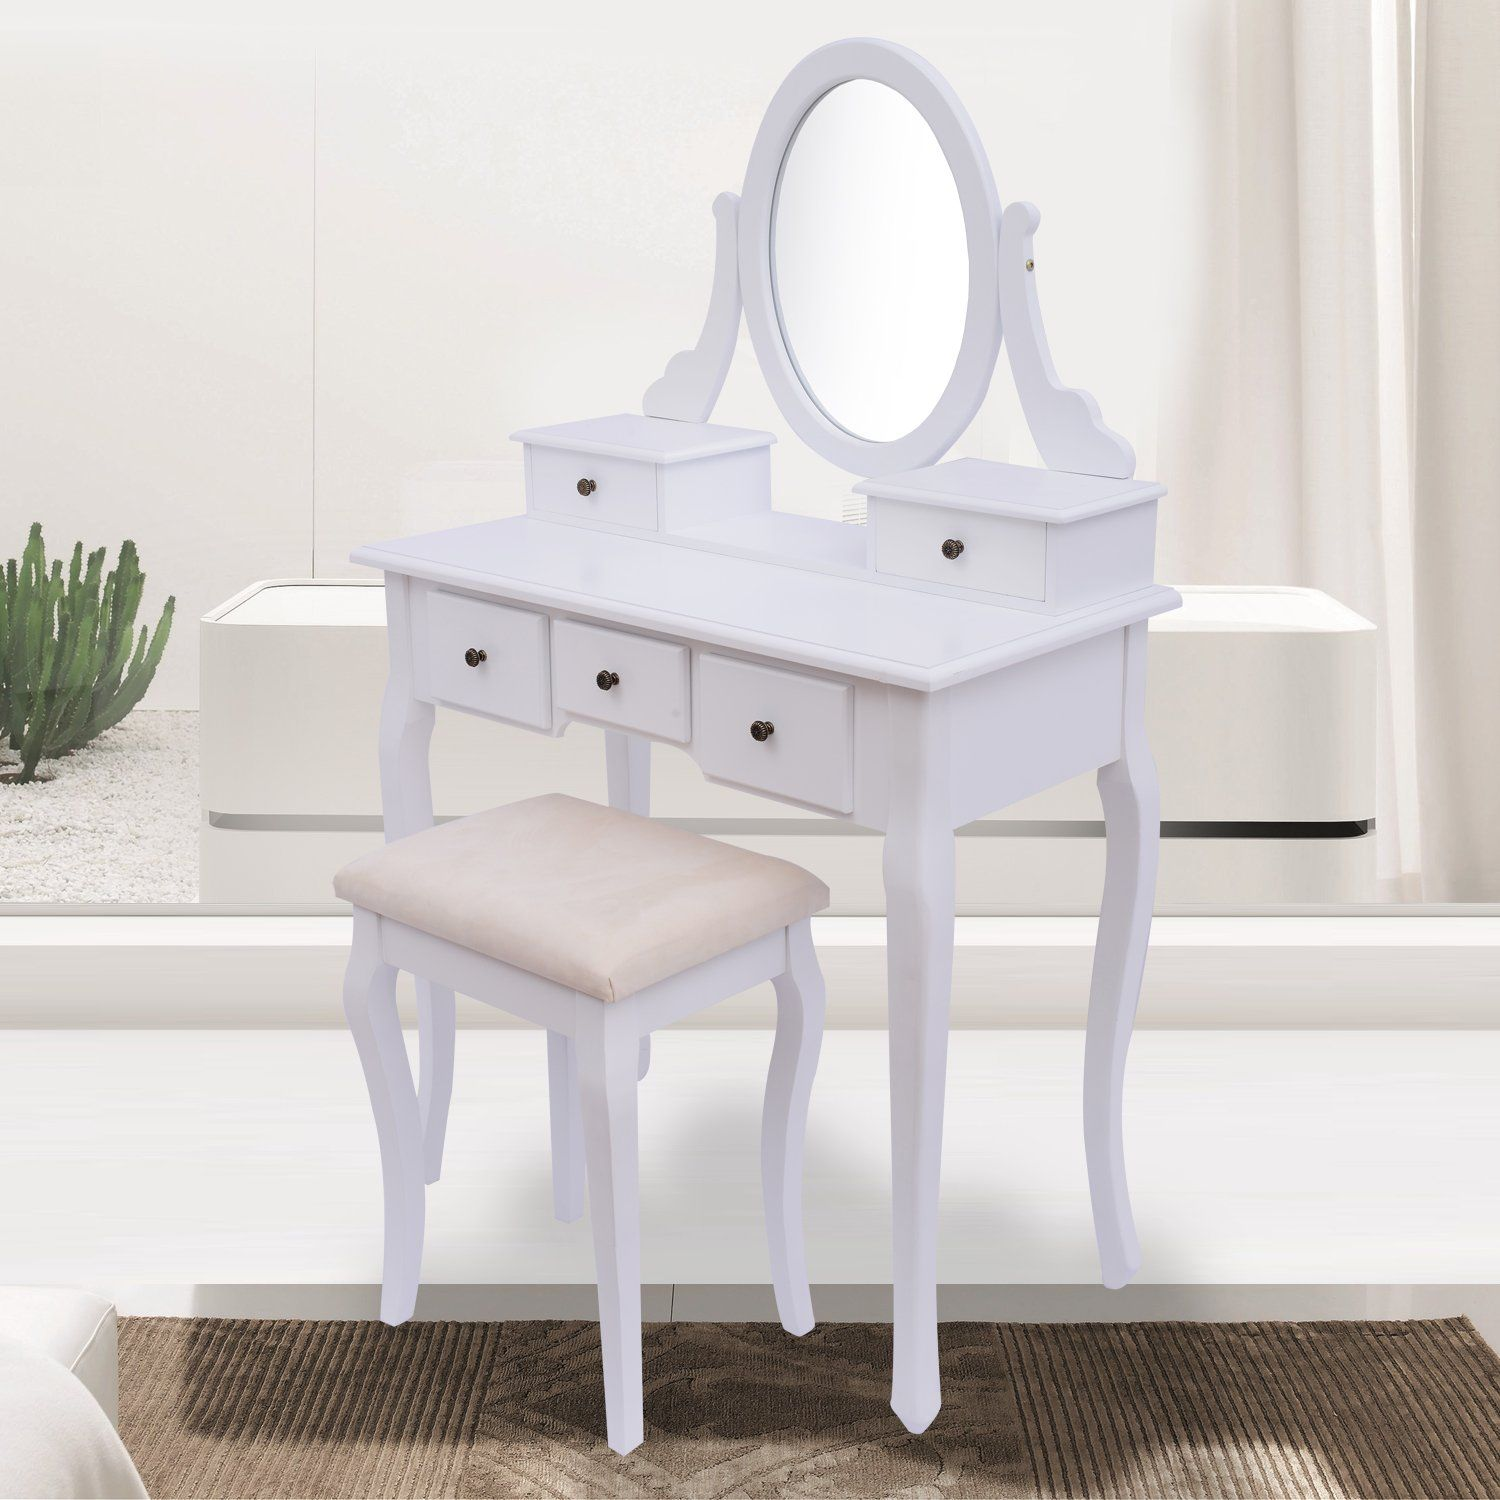 Antique style shabby chic dressing table with